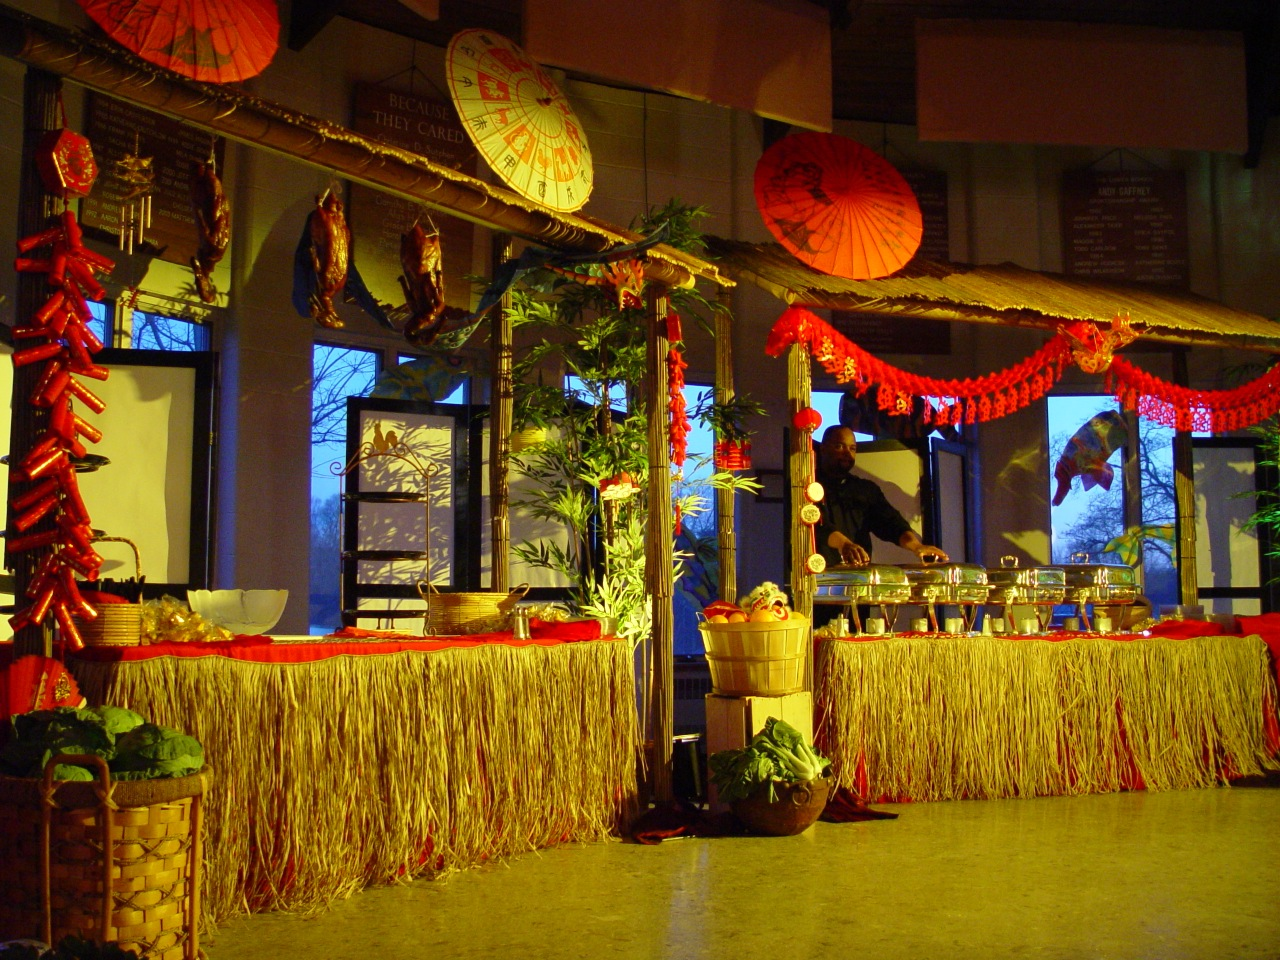 Bar Rental NJ NYC Eggsotic Events Asian Theme Food Surround Bar Display 1.jpg